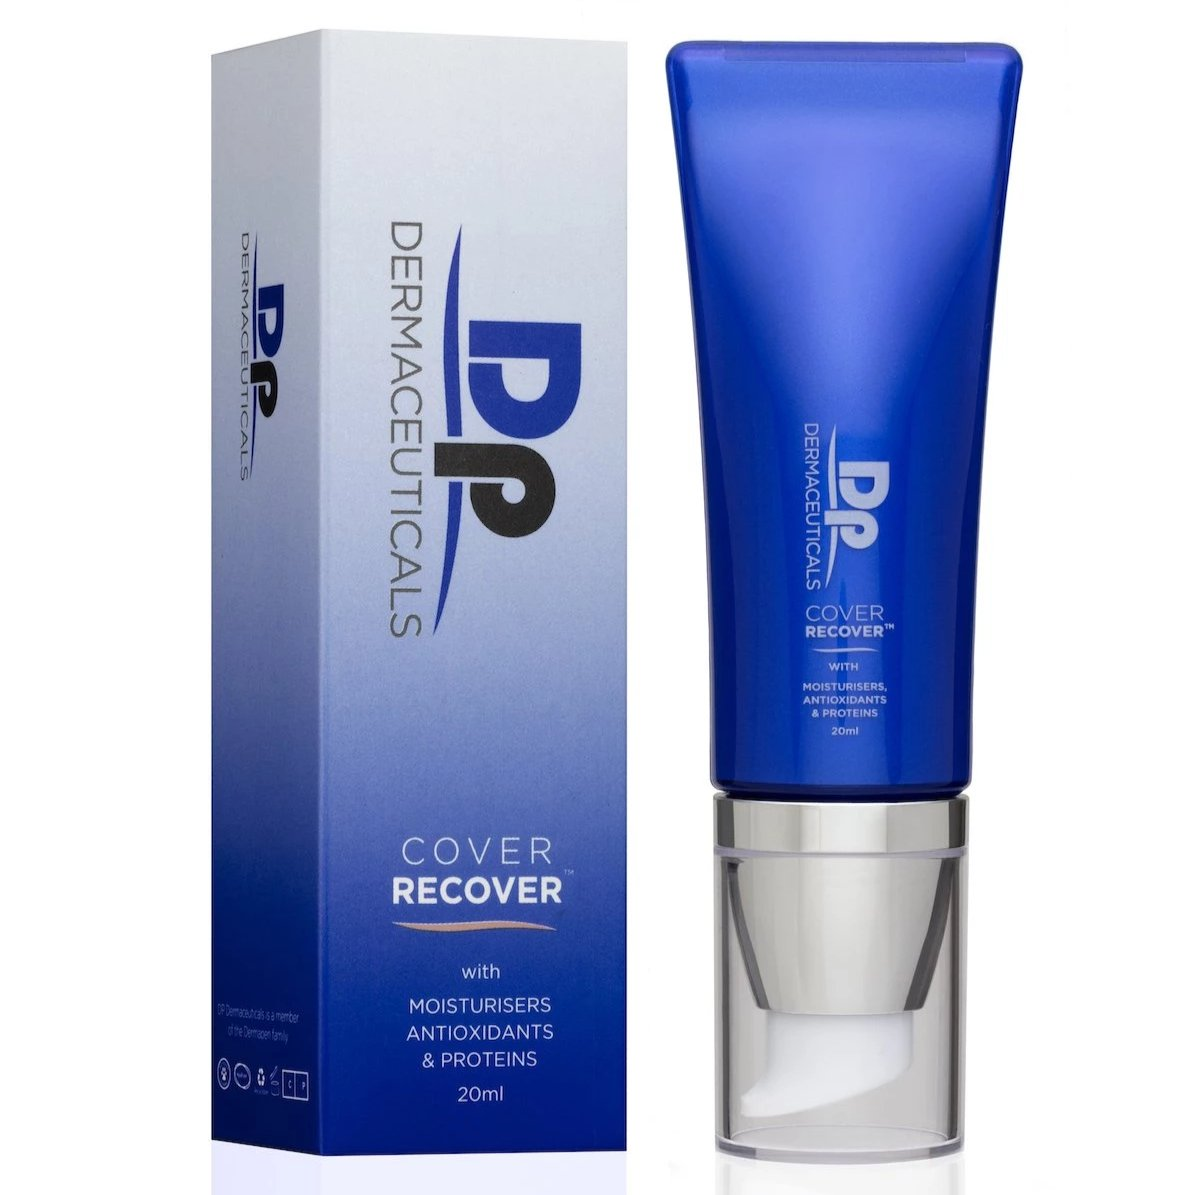 Cover Recover 20ml